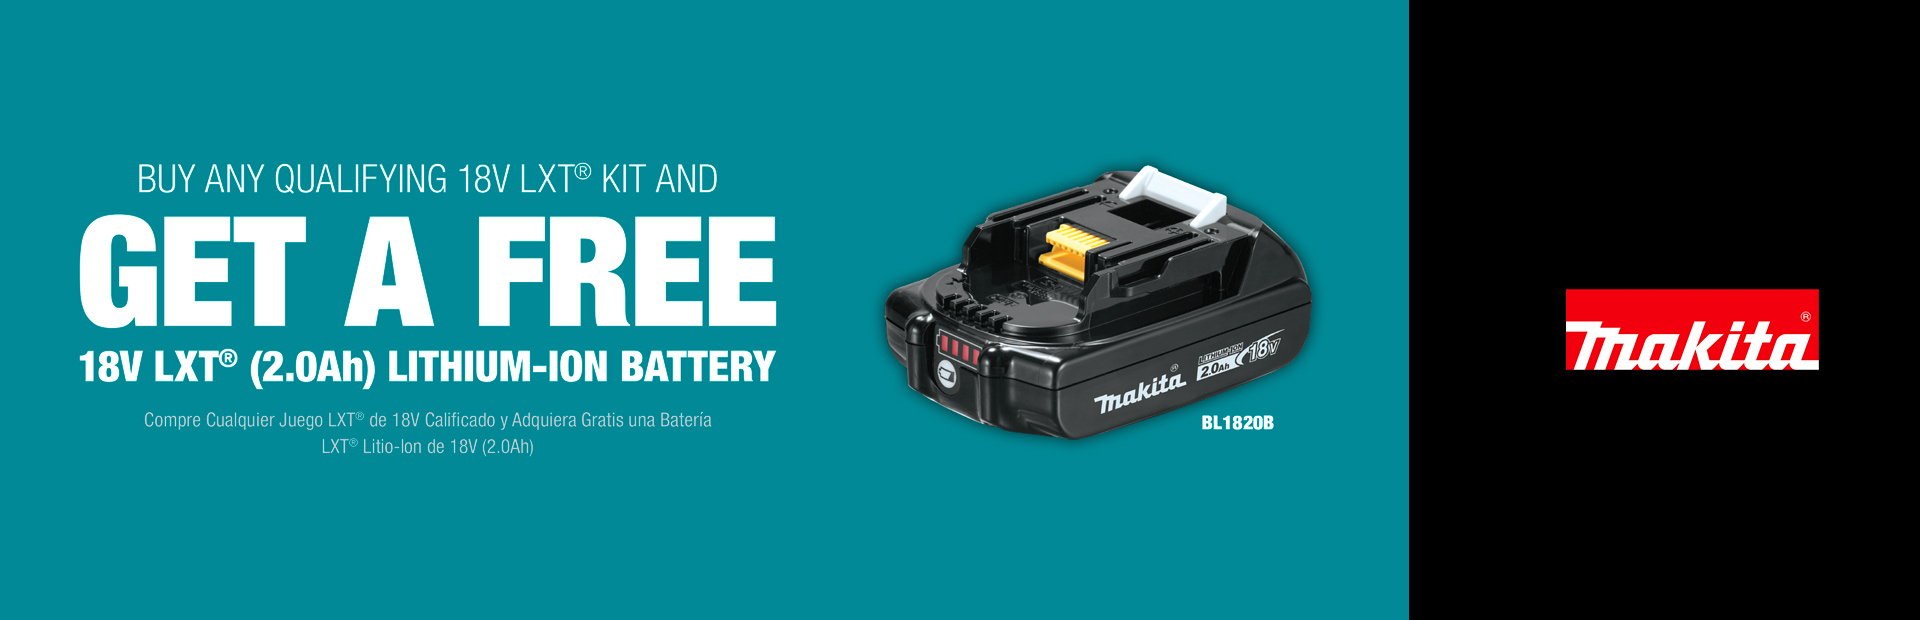 Makita: BUY A QUALIFYING 18V LXT® KIT